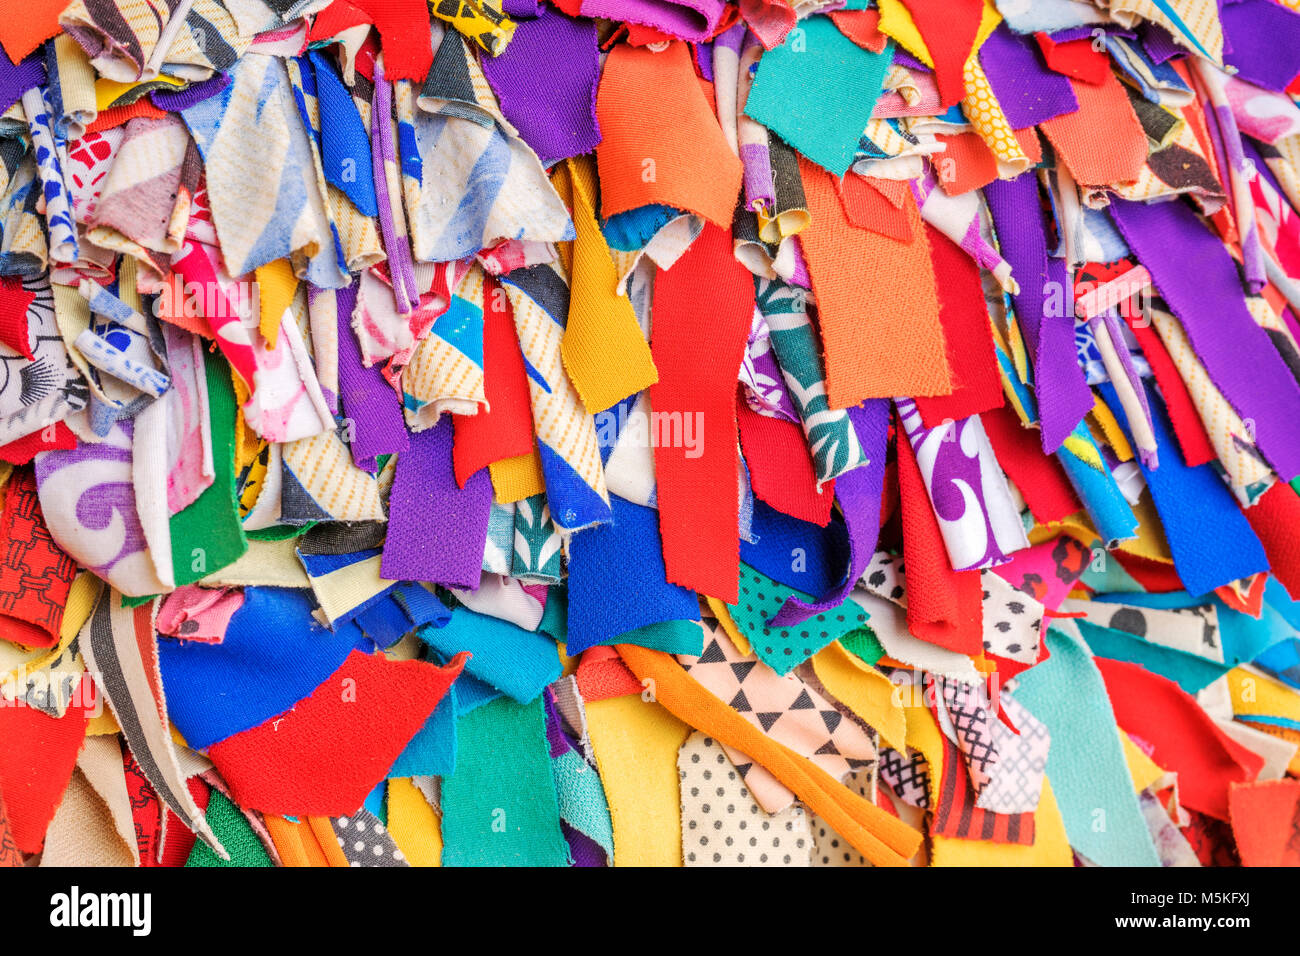 Cotton Rags Stock Photos Amp Cotton Rags Stock Images Alamy